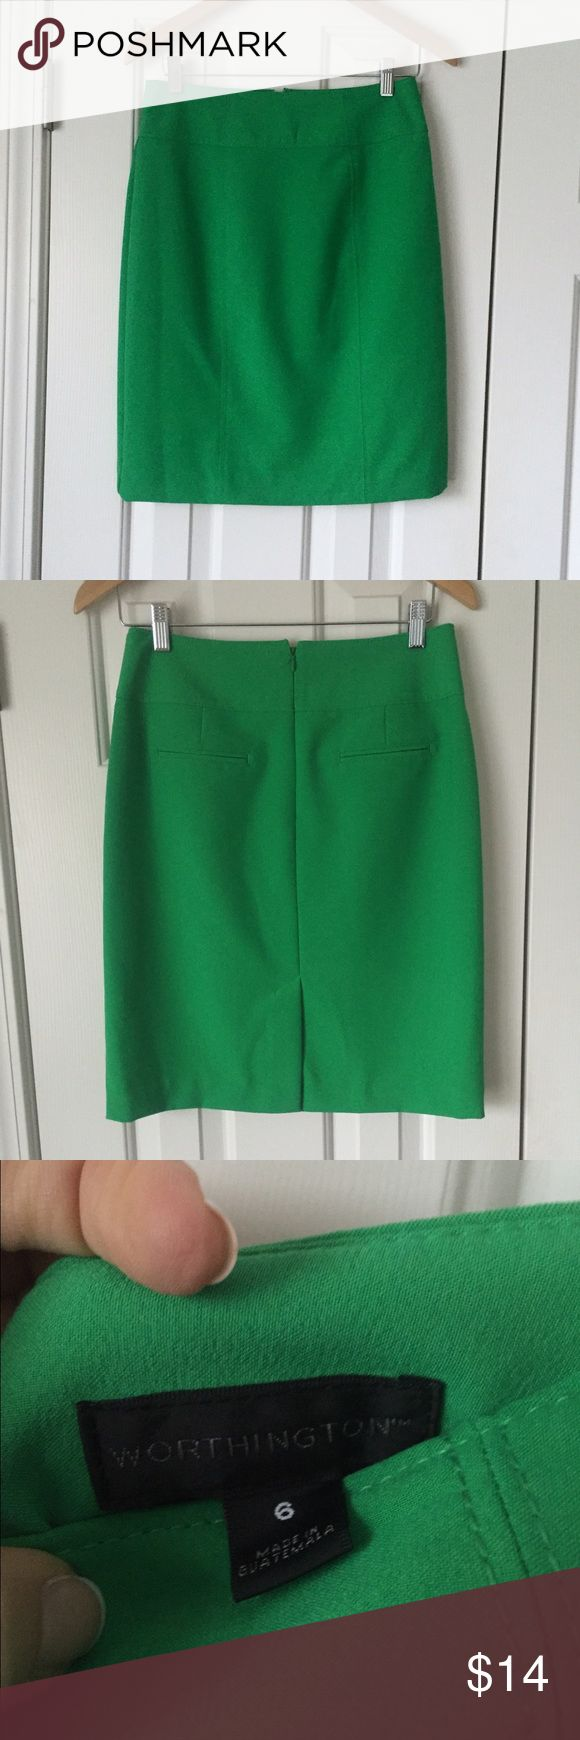 Beautiful bright green skirt! Perfect for work or dress up for a night out! Bright true green color. In excellent condition! Worthington Skirts Mini